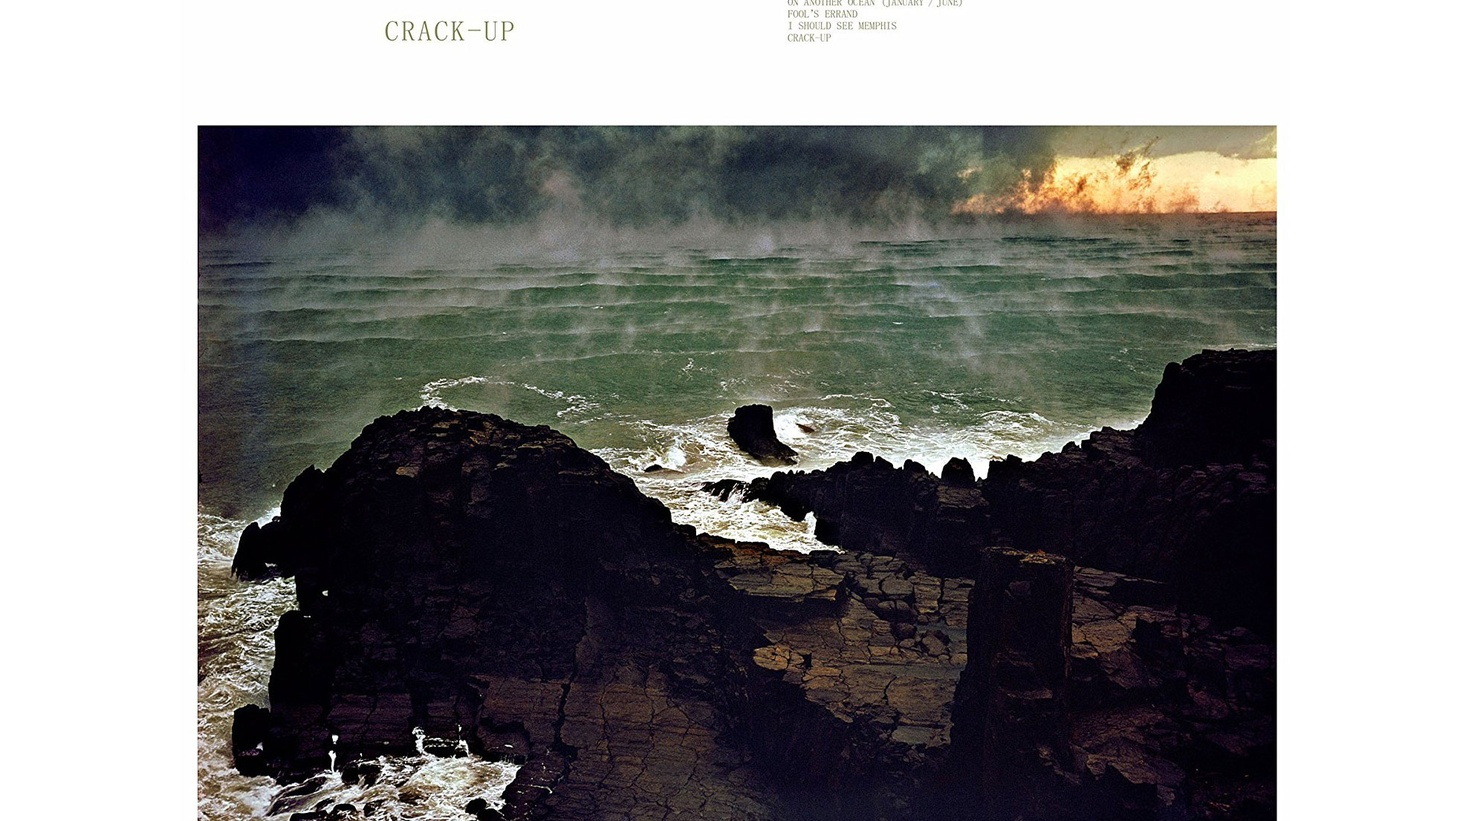 """Fleet Foxes, """"Crack-Up"""" – available on June 16, 2017."""